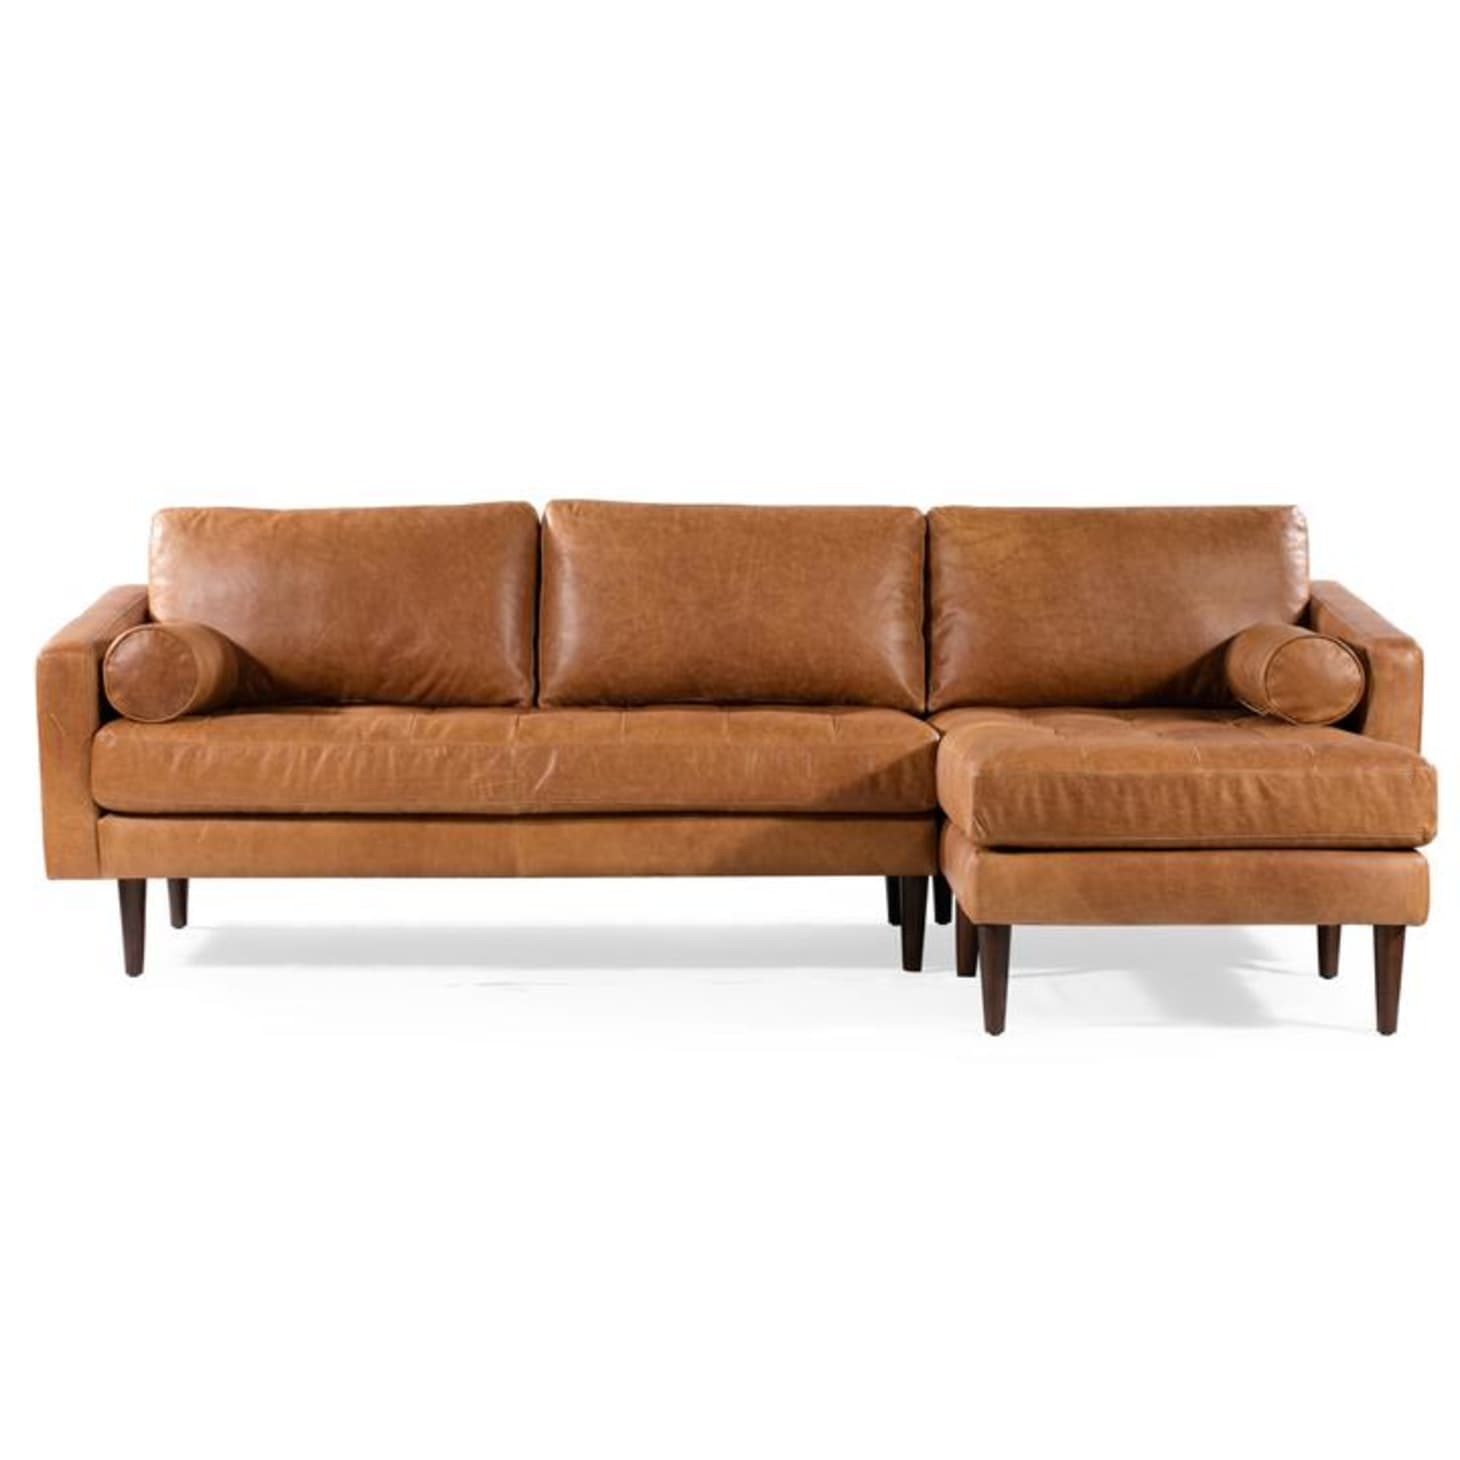 Amazing Tan Leather Sofa Trend Caramel Leather Sofa Apartment Pabps2019 Chair Design Images Pabps2019Com